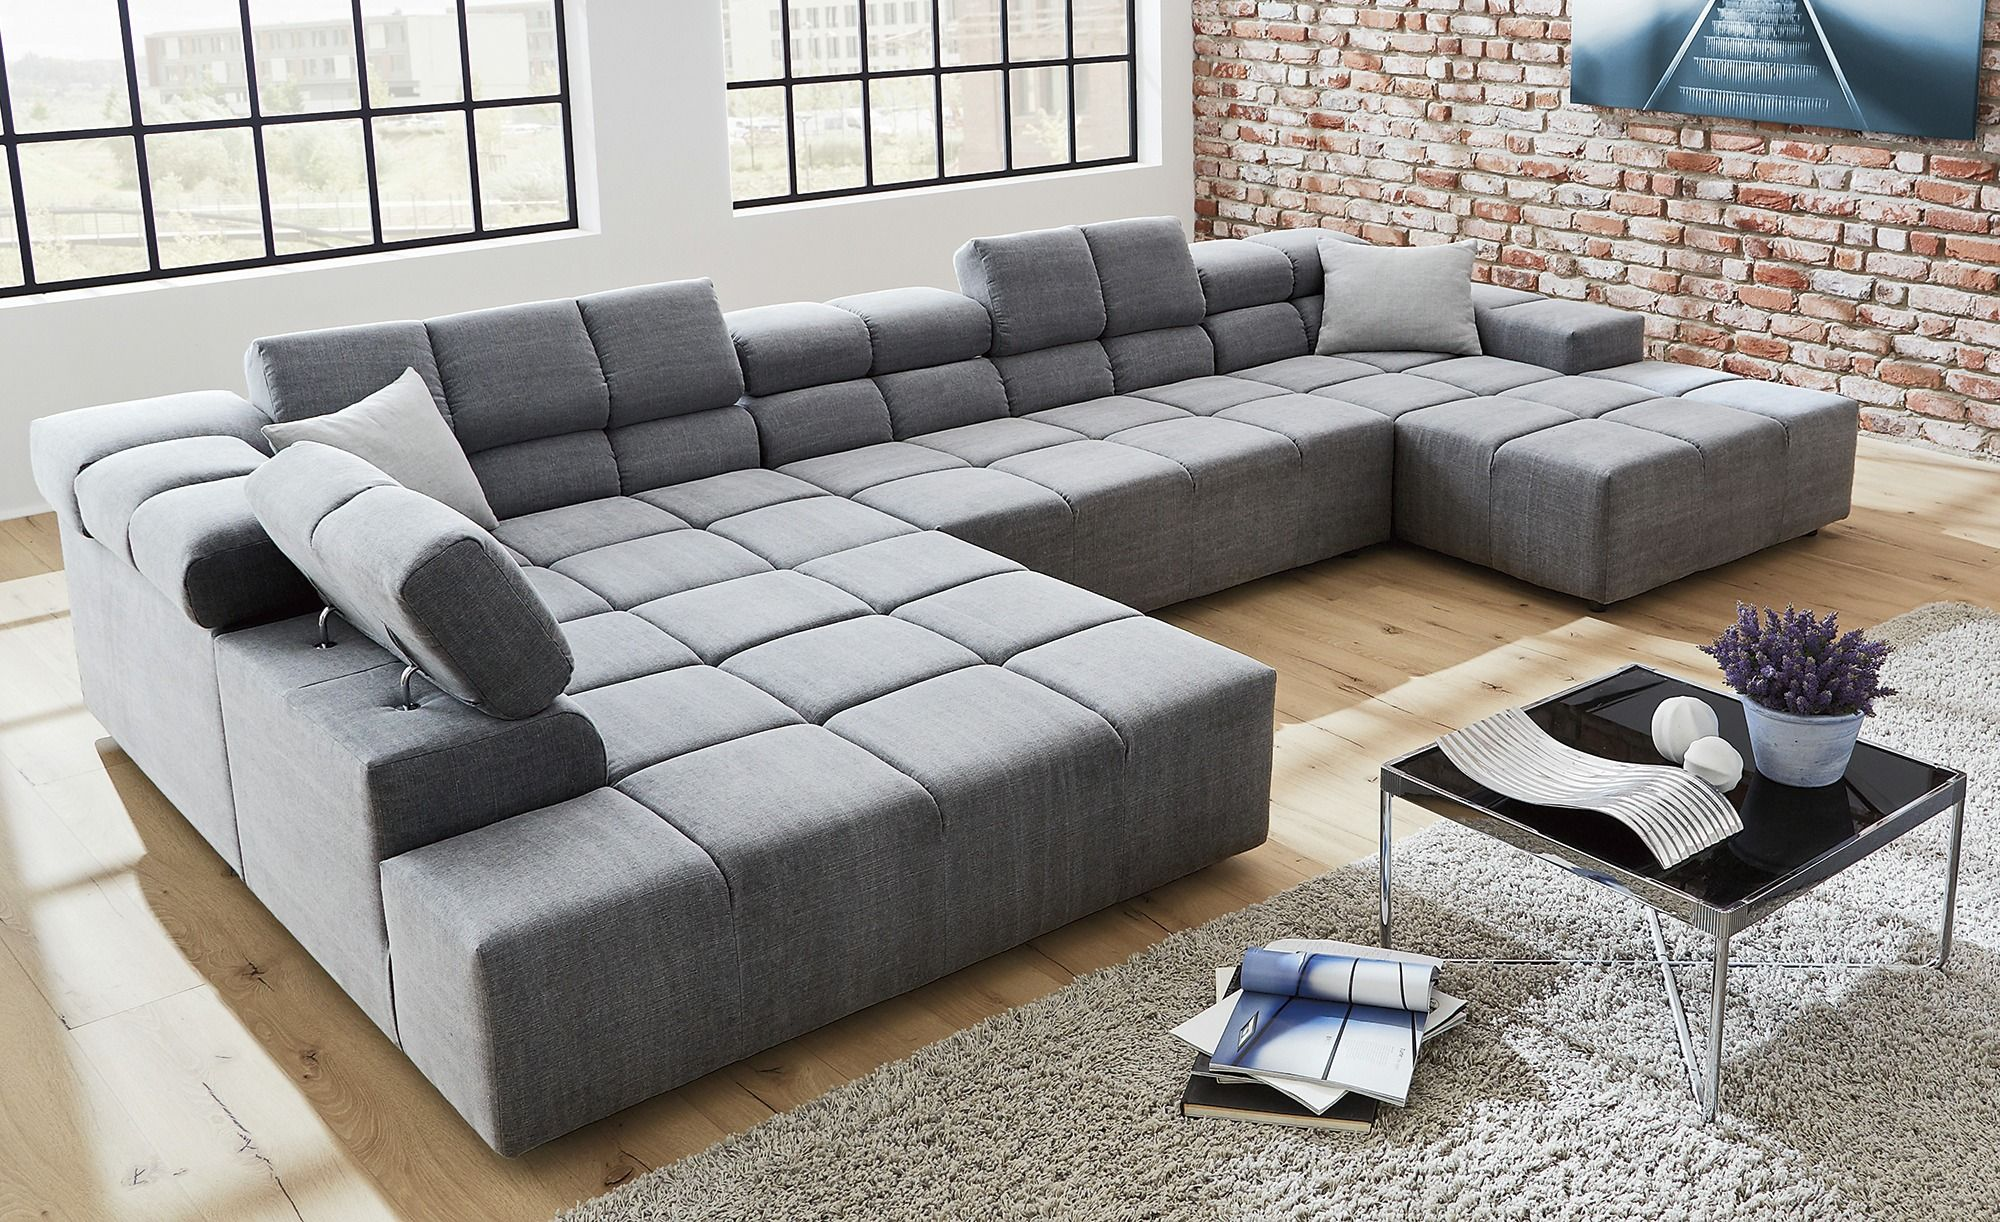 Big Sofa Xxl Höffner Wohnlandschaft Verstellbar Jannicka Möbel Höffner Cool Things